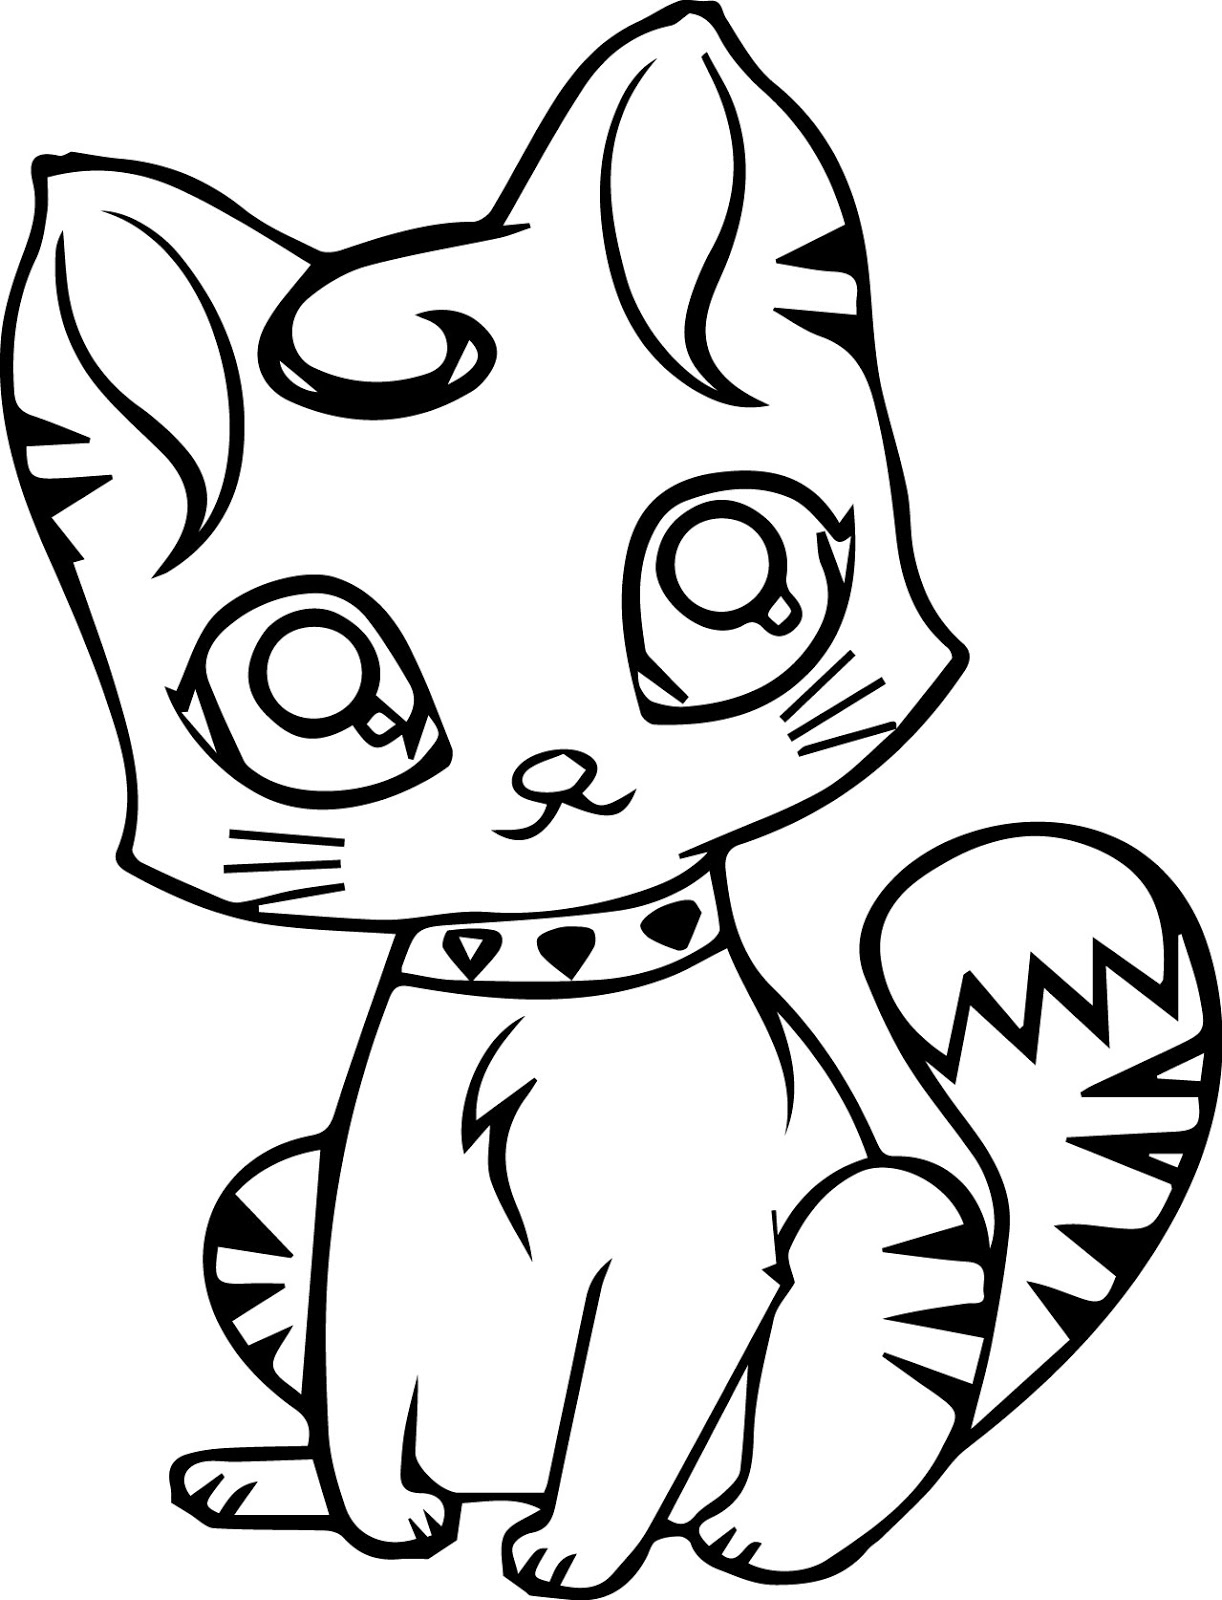 kitten color page navishta sketch sweet cute angle cats kitten page color